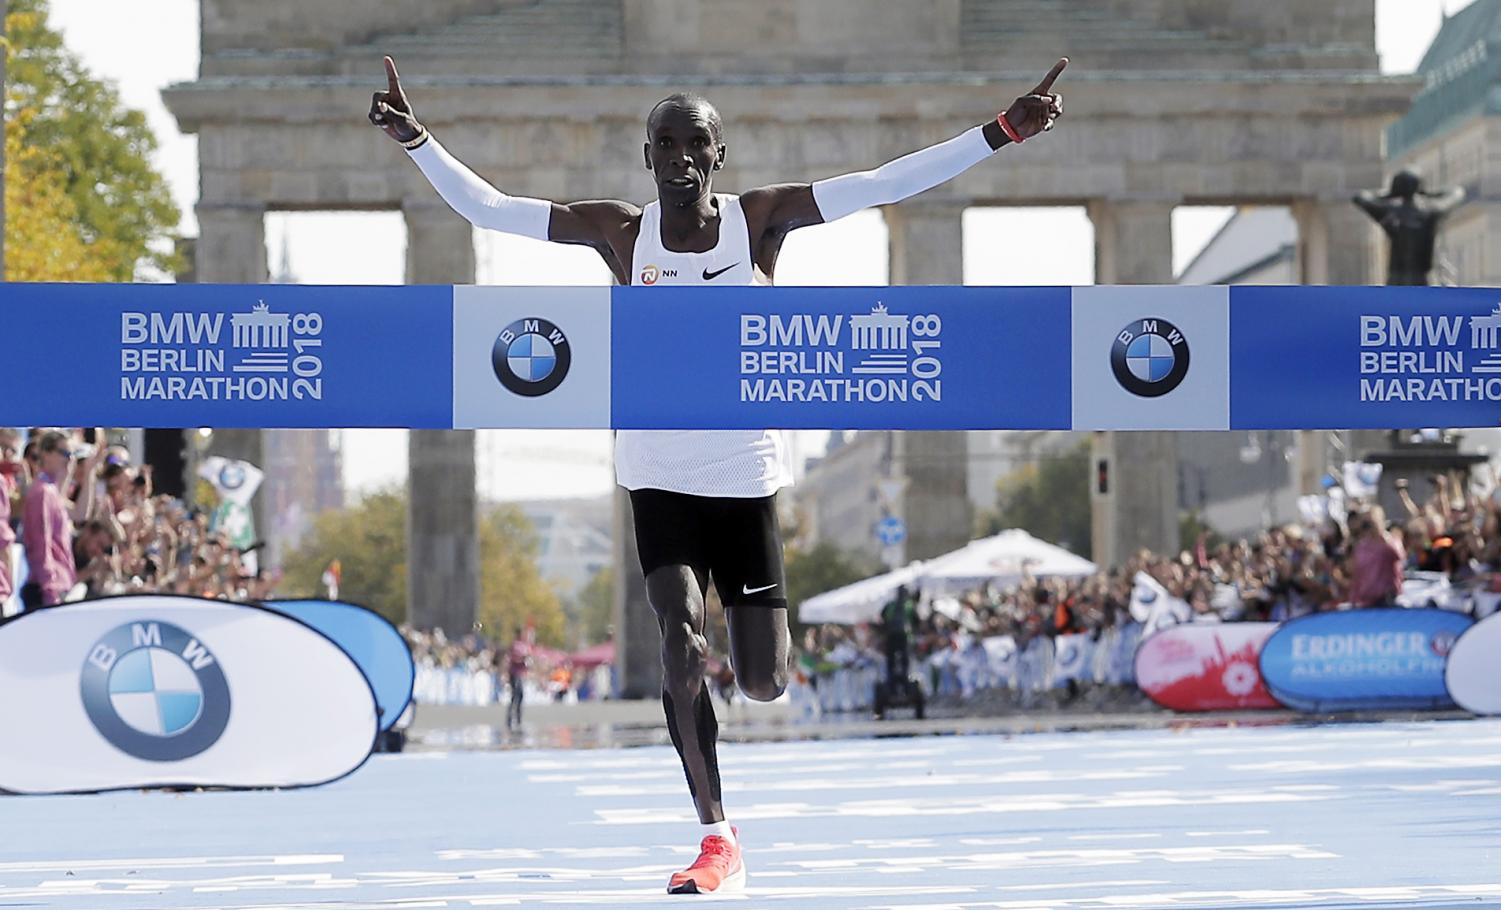 Eliud Kipchoge runs to win the 45th Berlin Marathon in Berlin, Germany, Sunday, Sept. 16, 2018. Eliud Kipchoge set a new world record of 2 hours 1 minute 39 seconds.